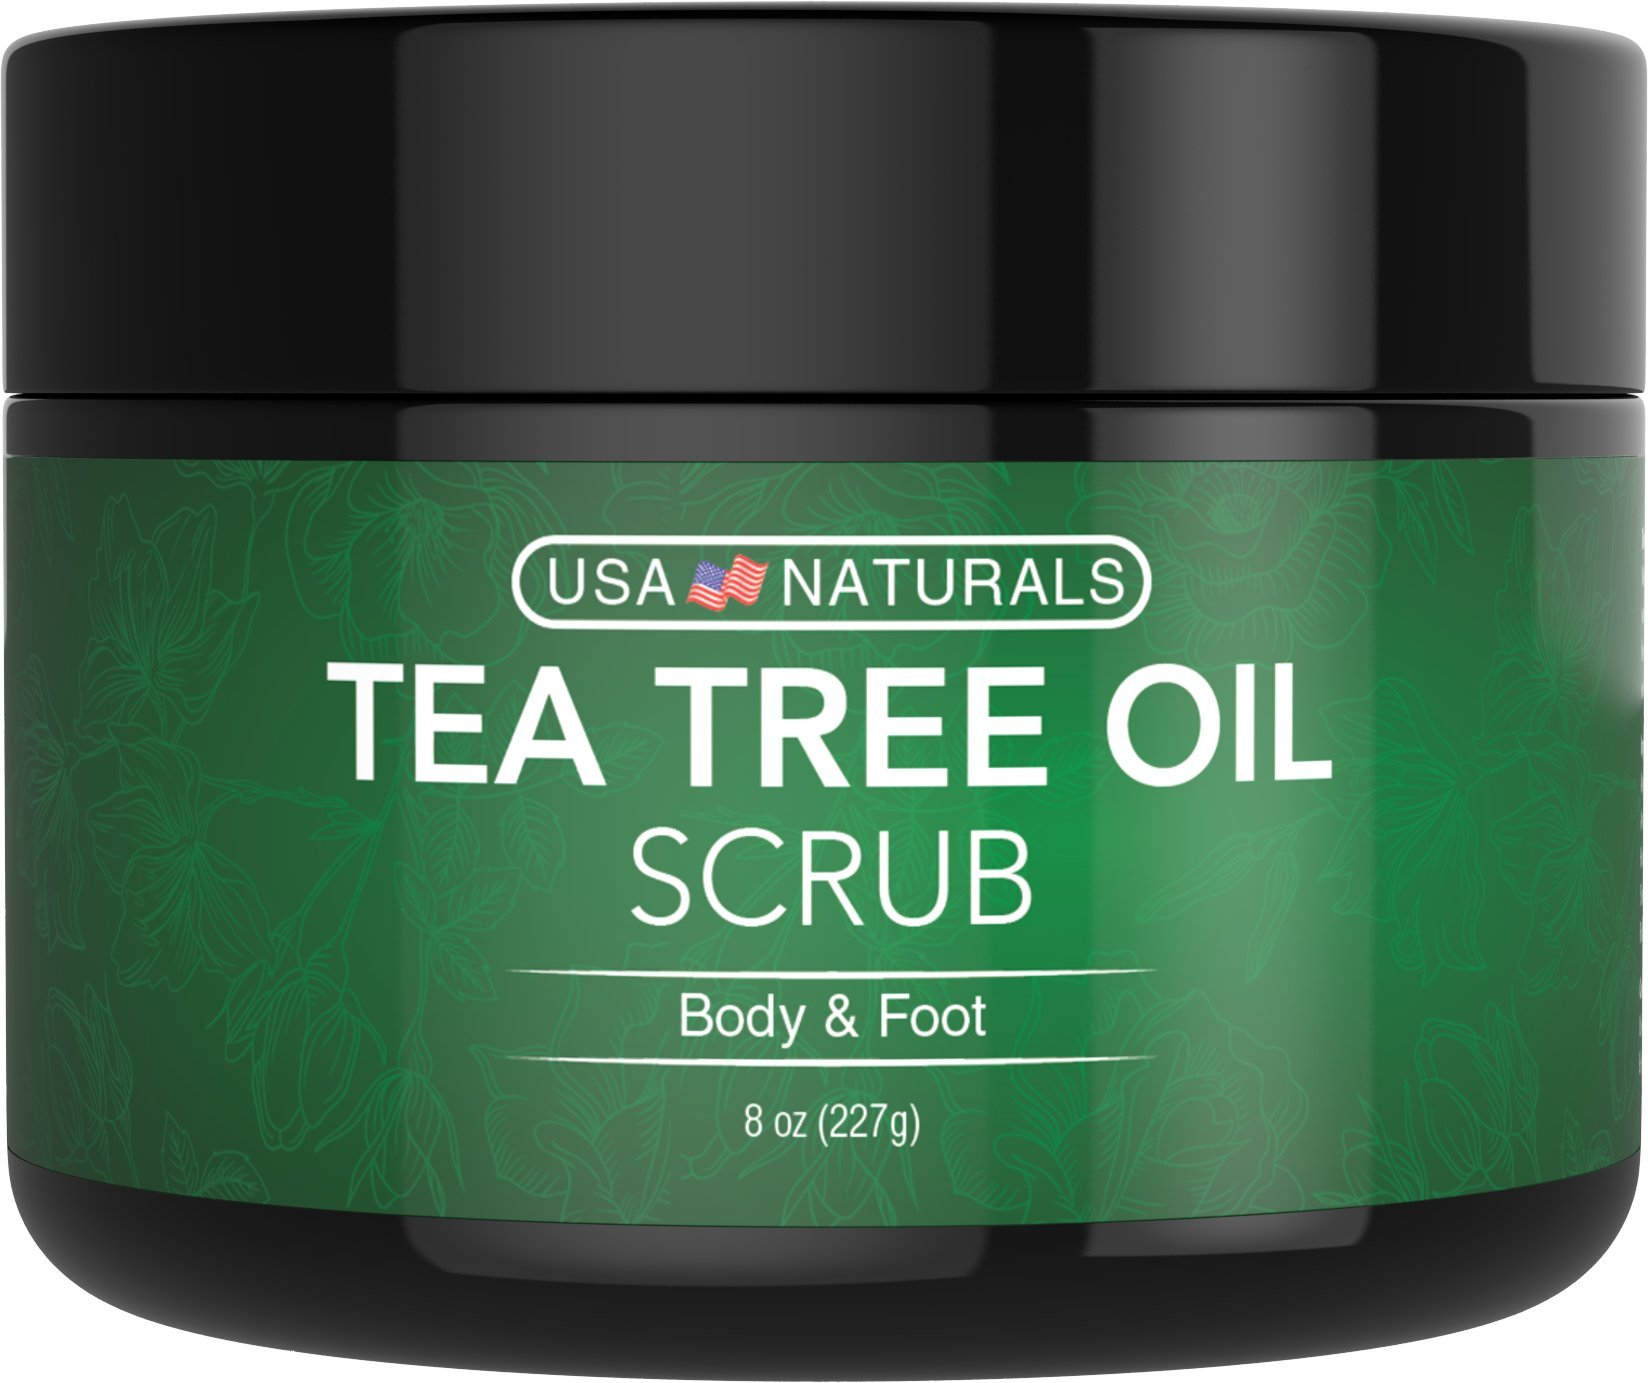 Tea Tree Oil Foot and Body Scrub - Antifungal Treatment - Exfoliating Scrub with a Unique Blend of Essential Oils - Smooths Calluses - Helps With Athlete's Foot, Acne, Jock Itch & Dead, Dry Skin by USA Naturals (Image #1)